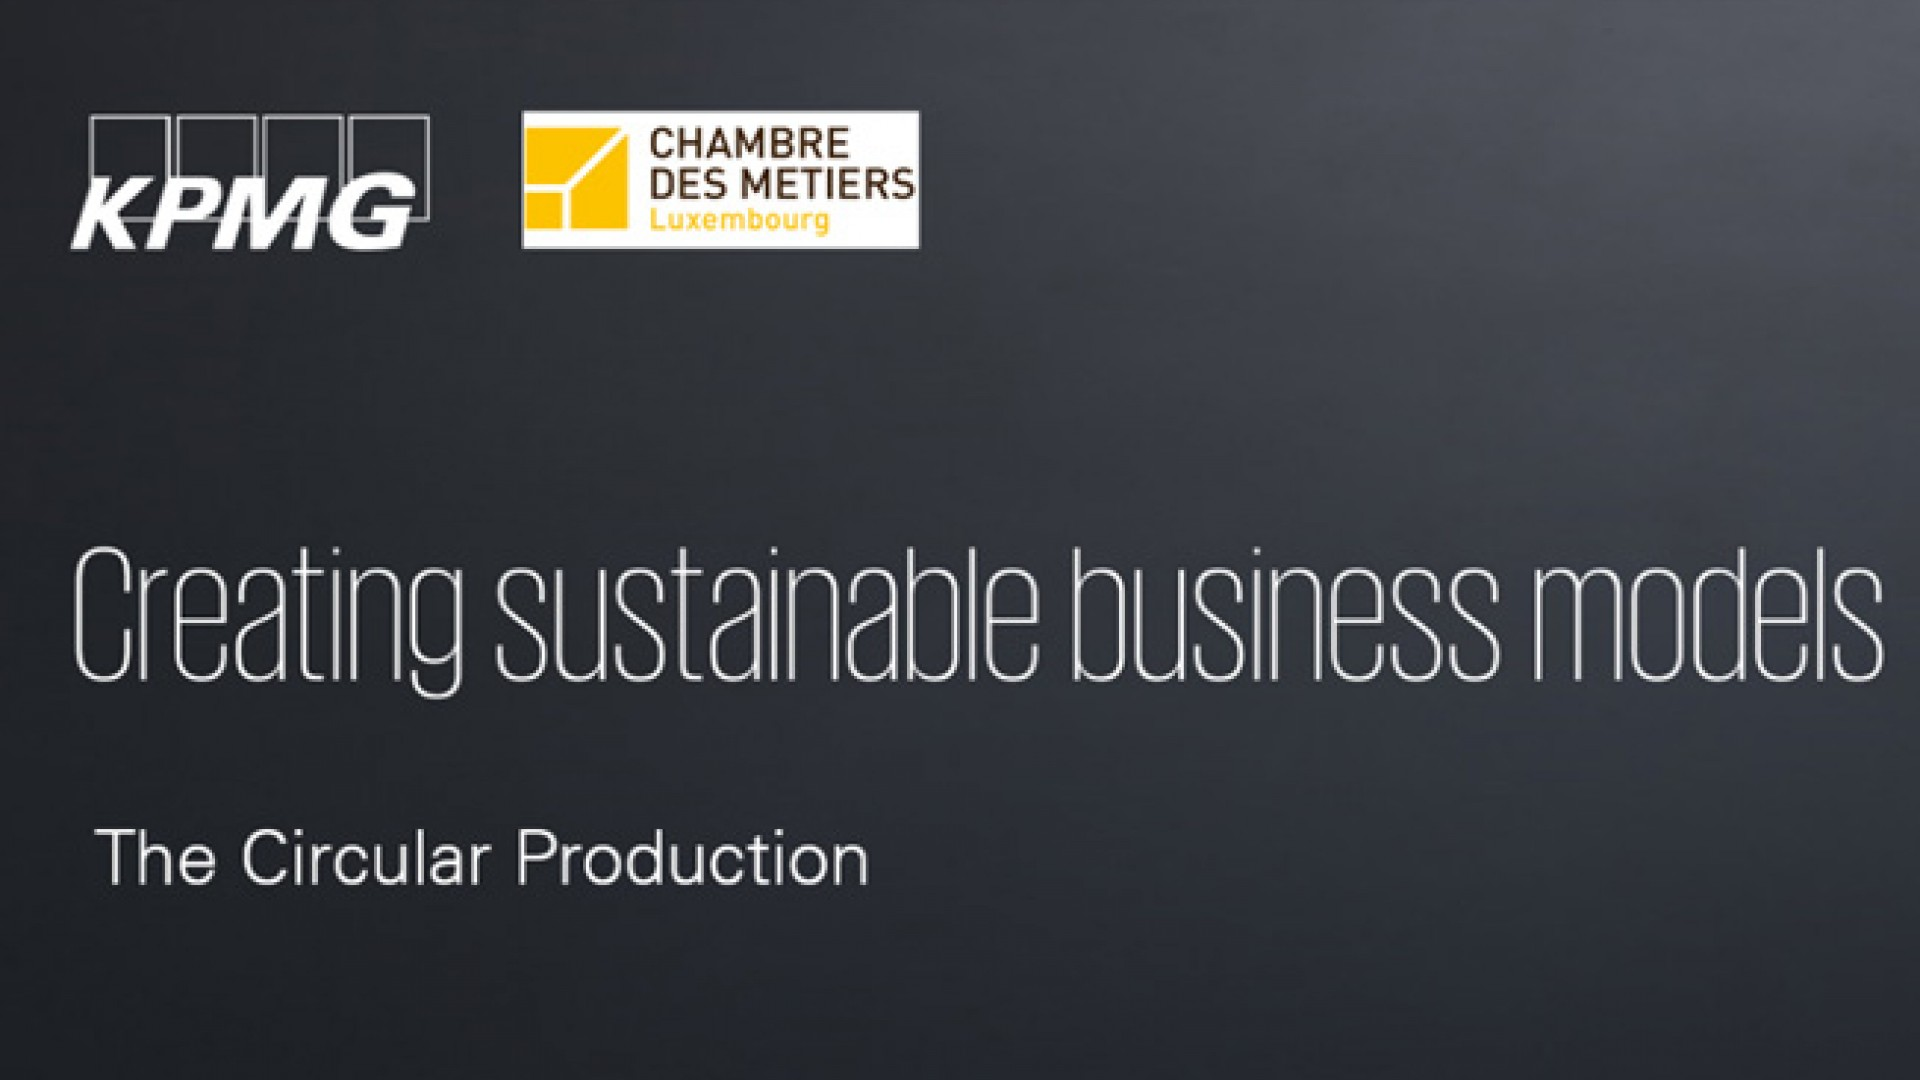 KPMG CdM Production-circulaire News